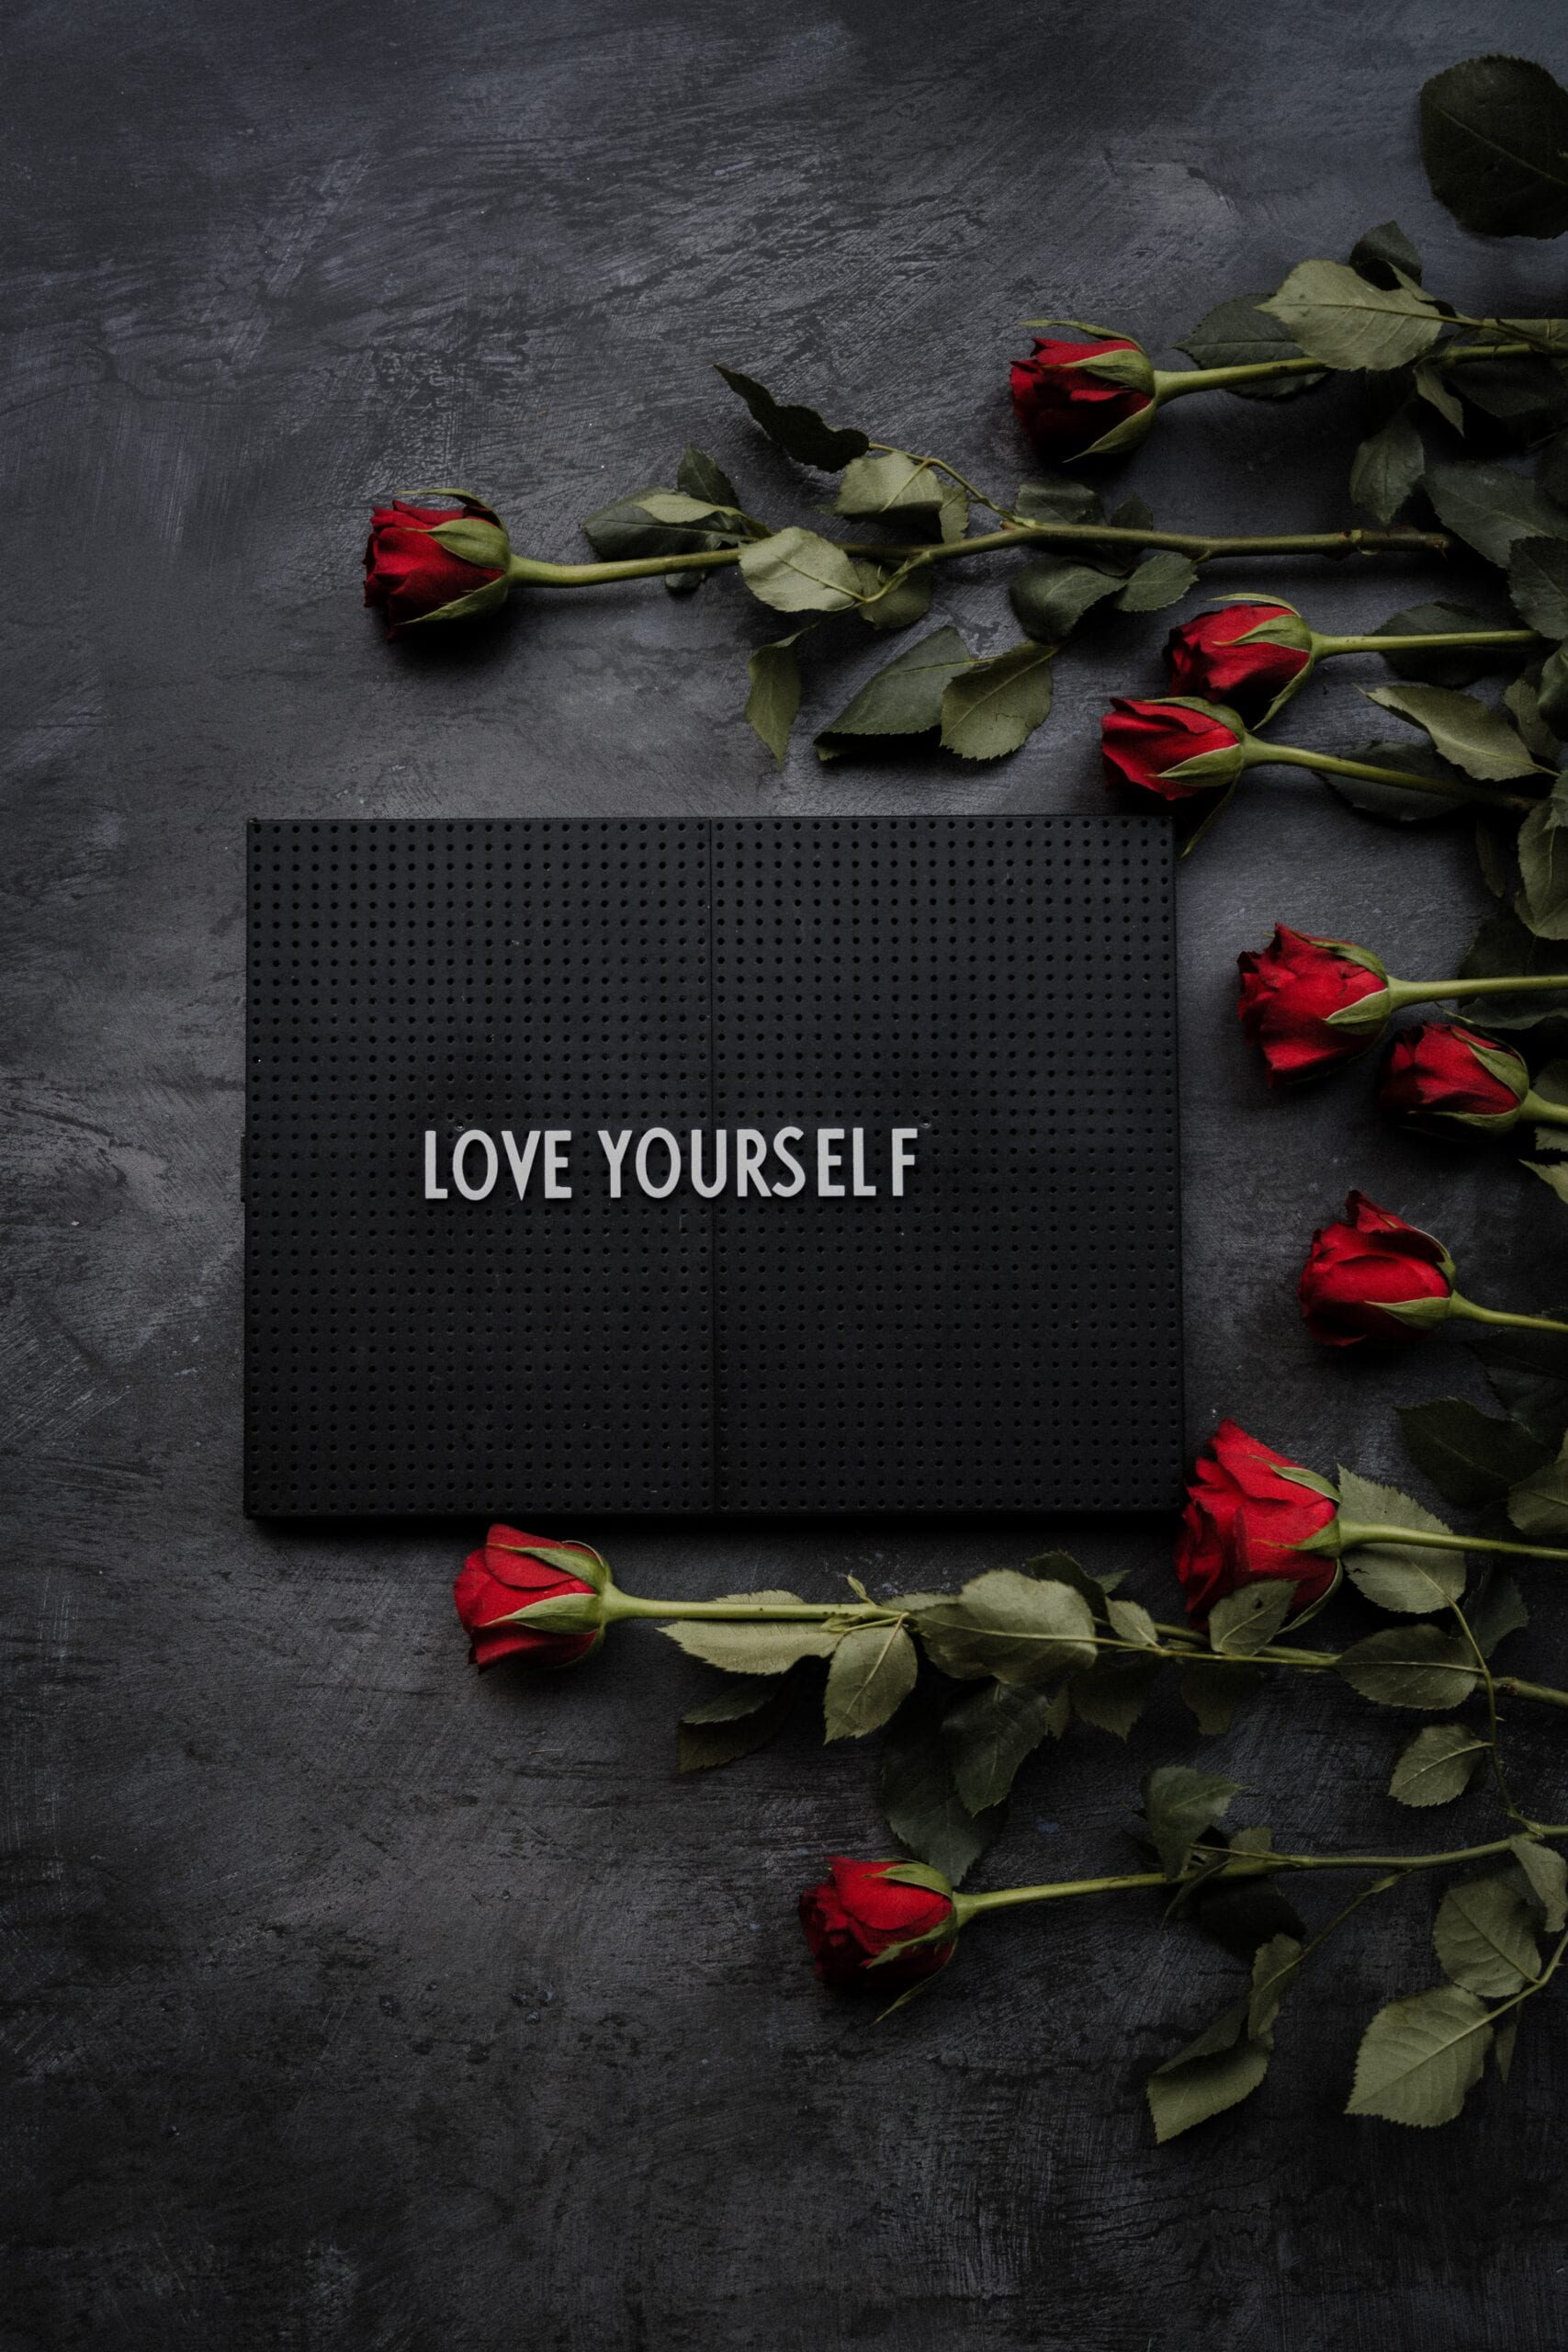 What Does Self-Love Mean?